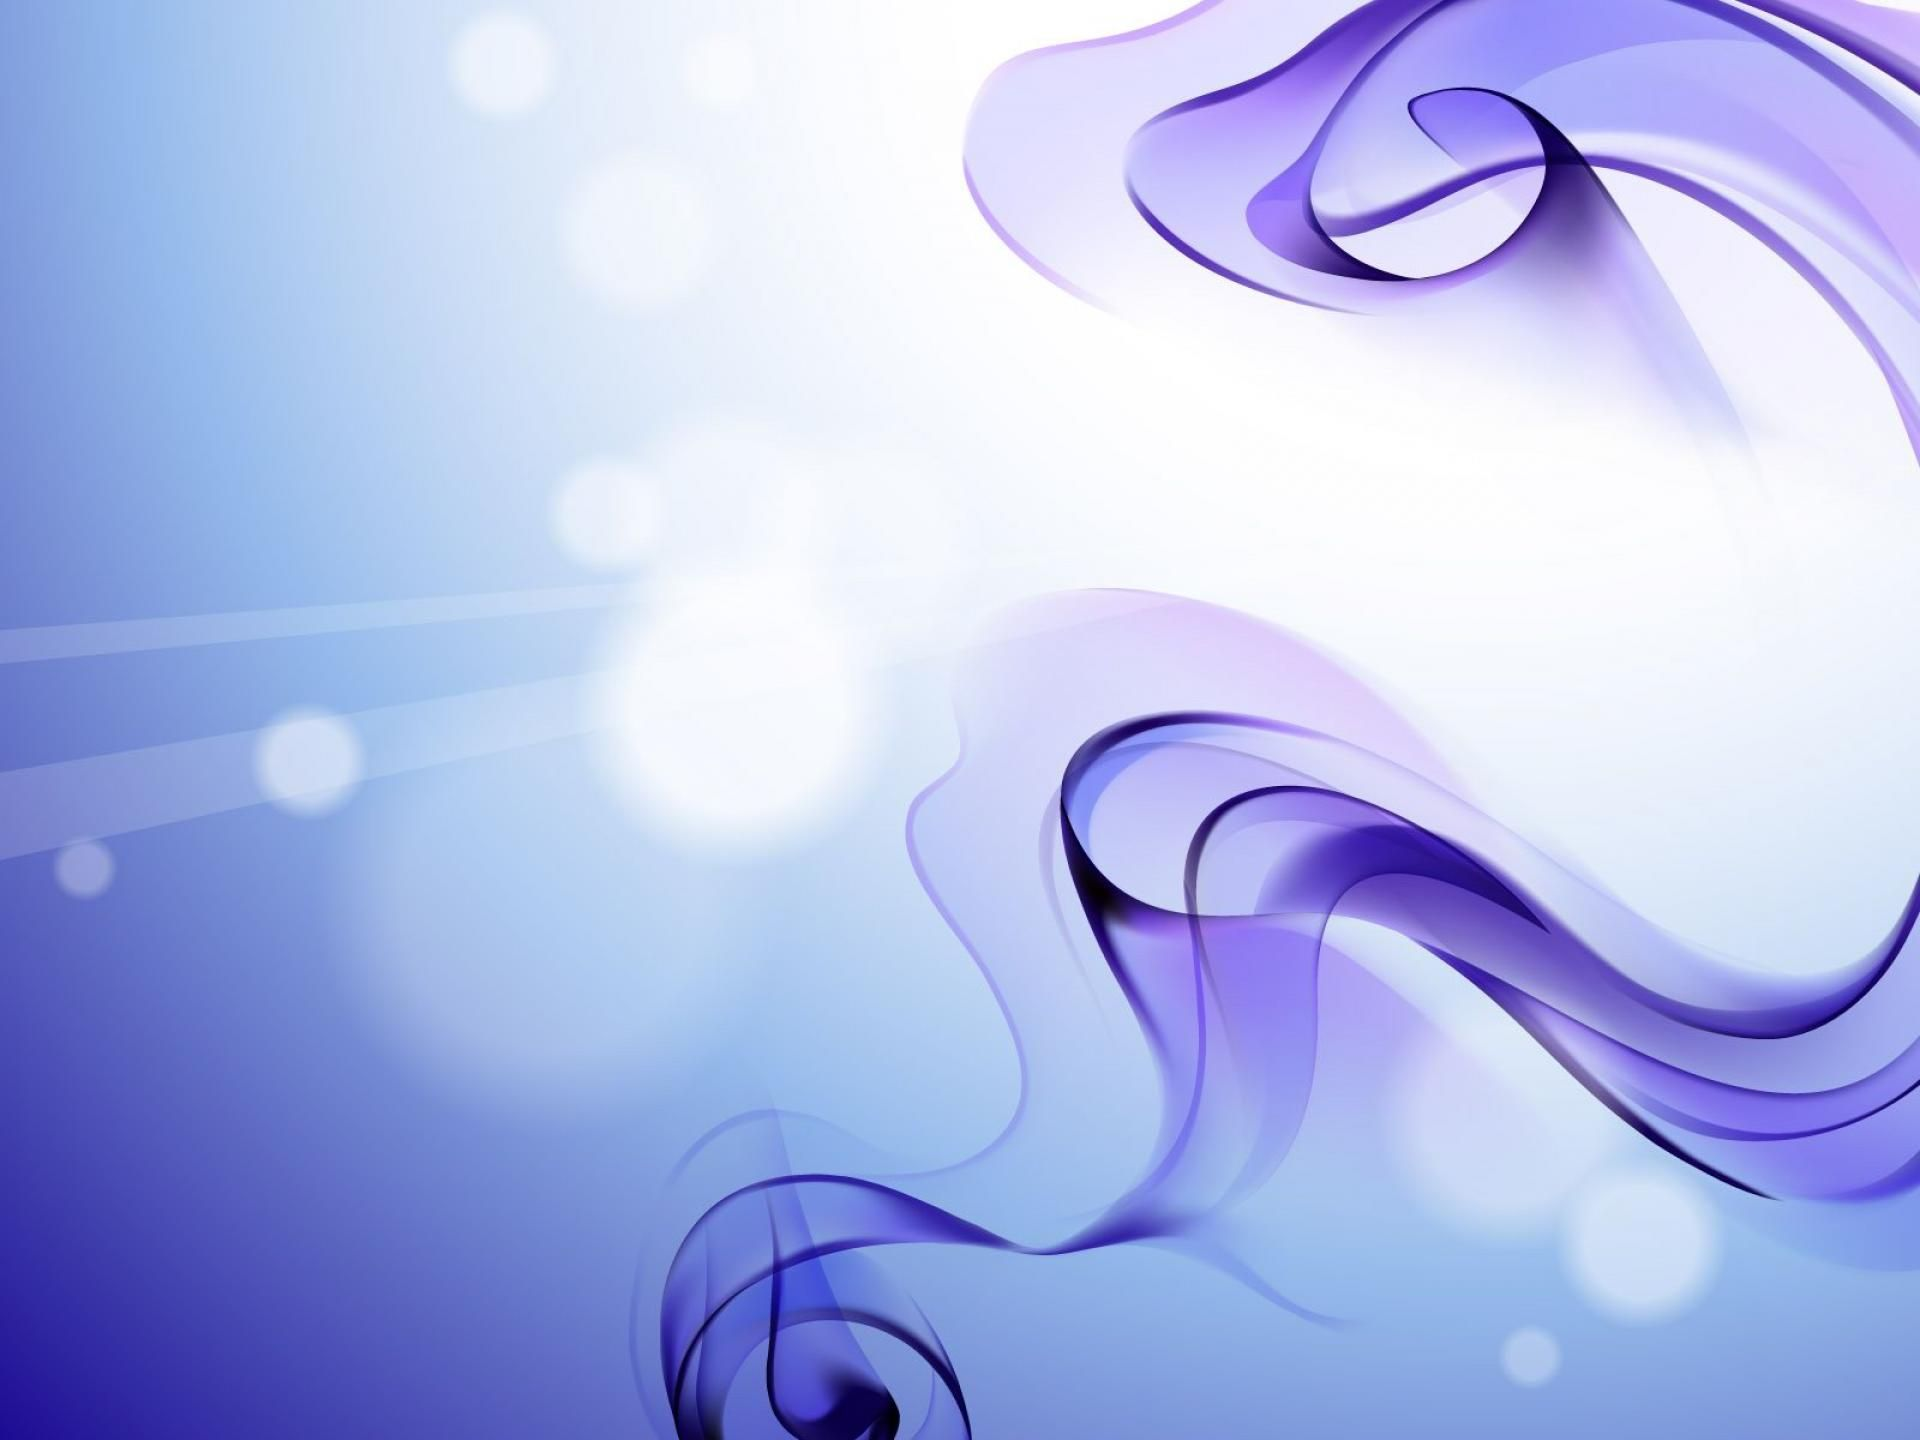 Purple Lights Waves Http Www Pptbackgrounds Net Purple Lights Waves Backgrounds Html Smoke Art Powerpoint Template Free Abstract